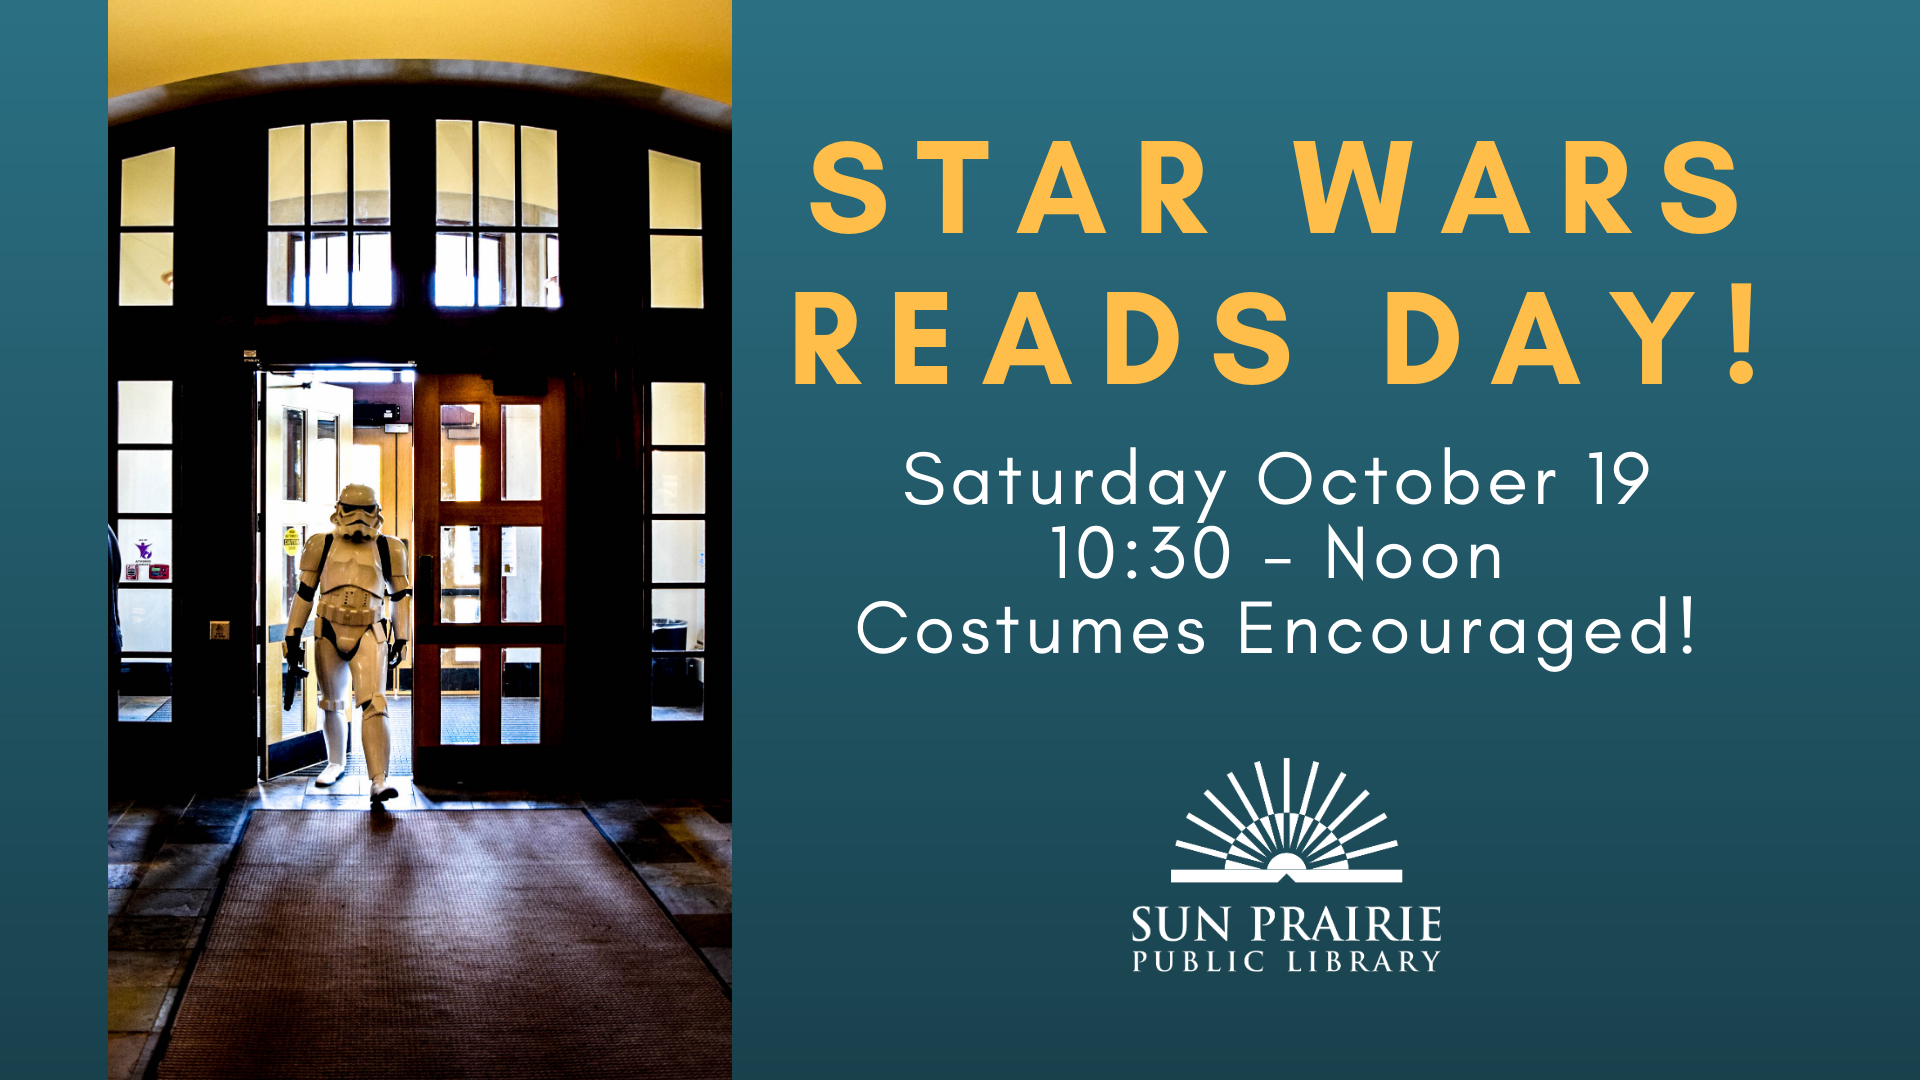 Star Wars Reads Day - Stormtrooper entering the building.